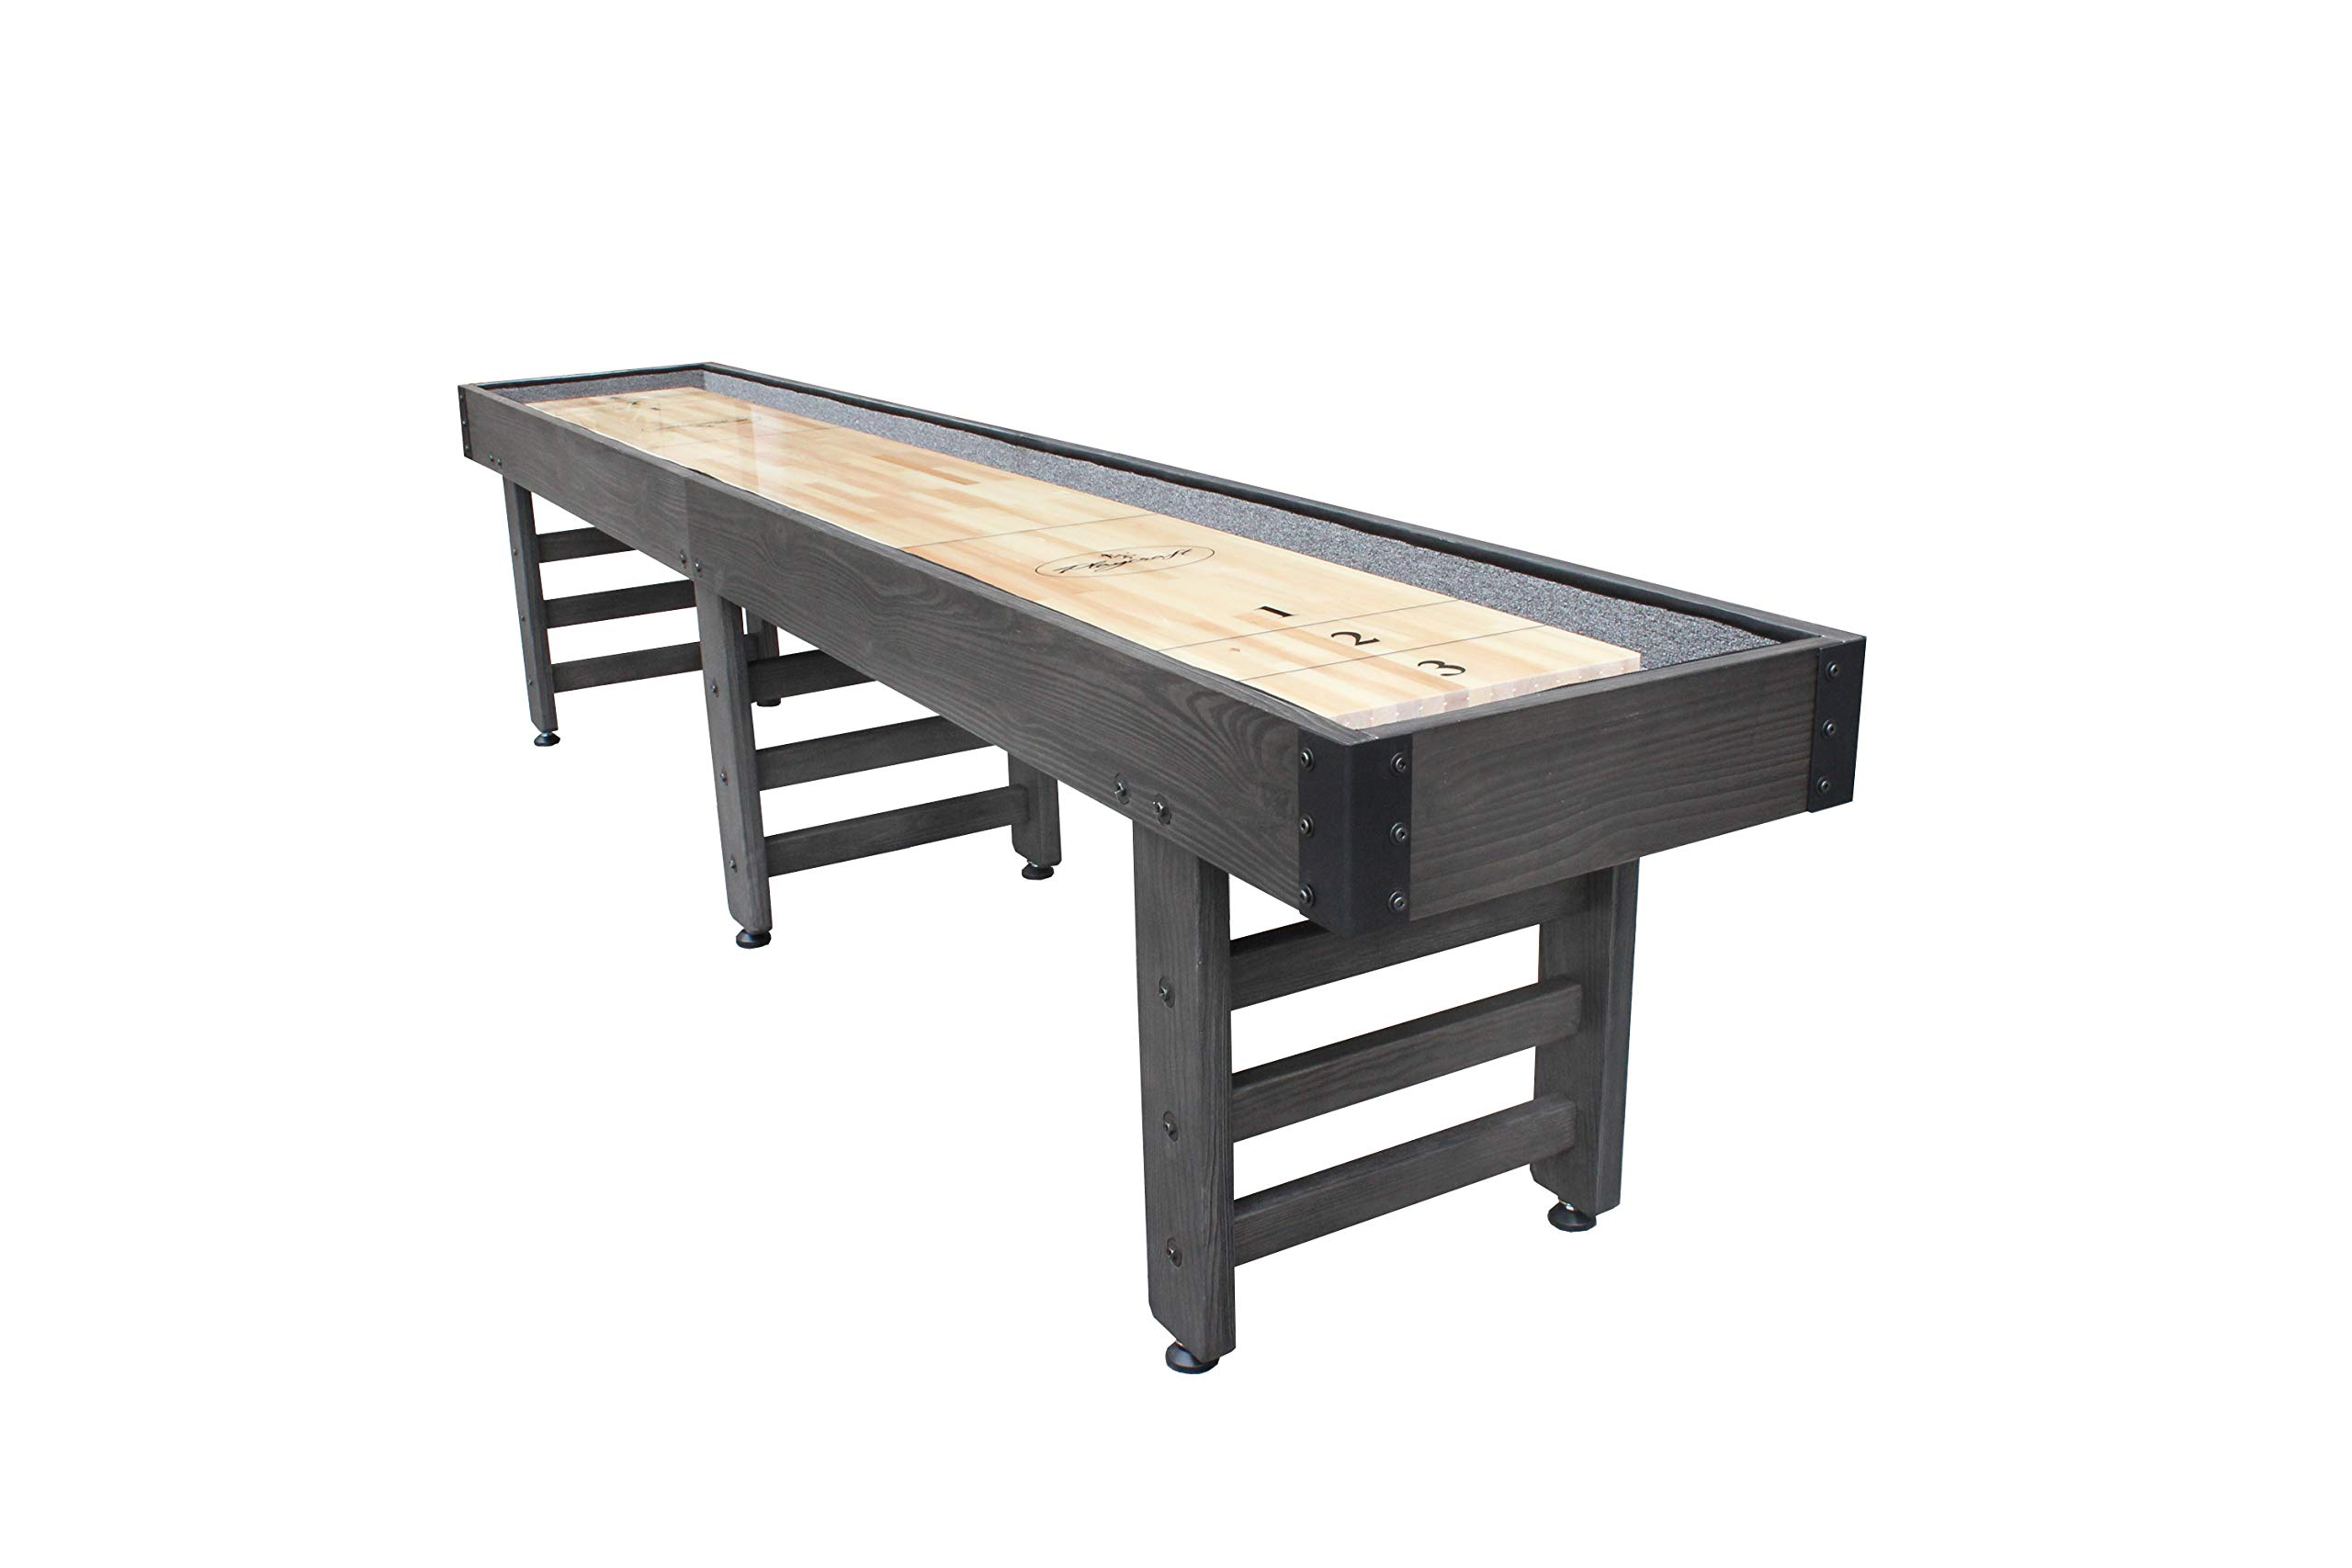 Playcraft Saybrook Midnight 16' Shuffleboard Table by Playcraft